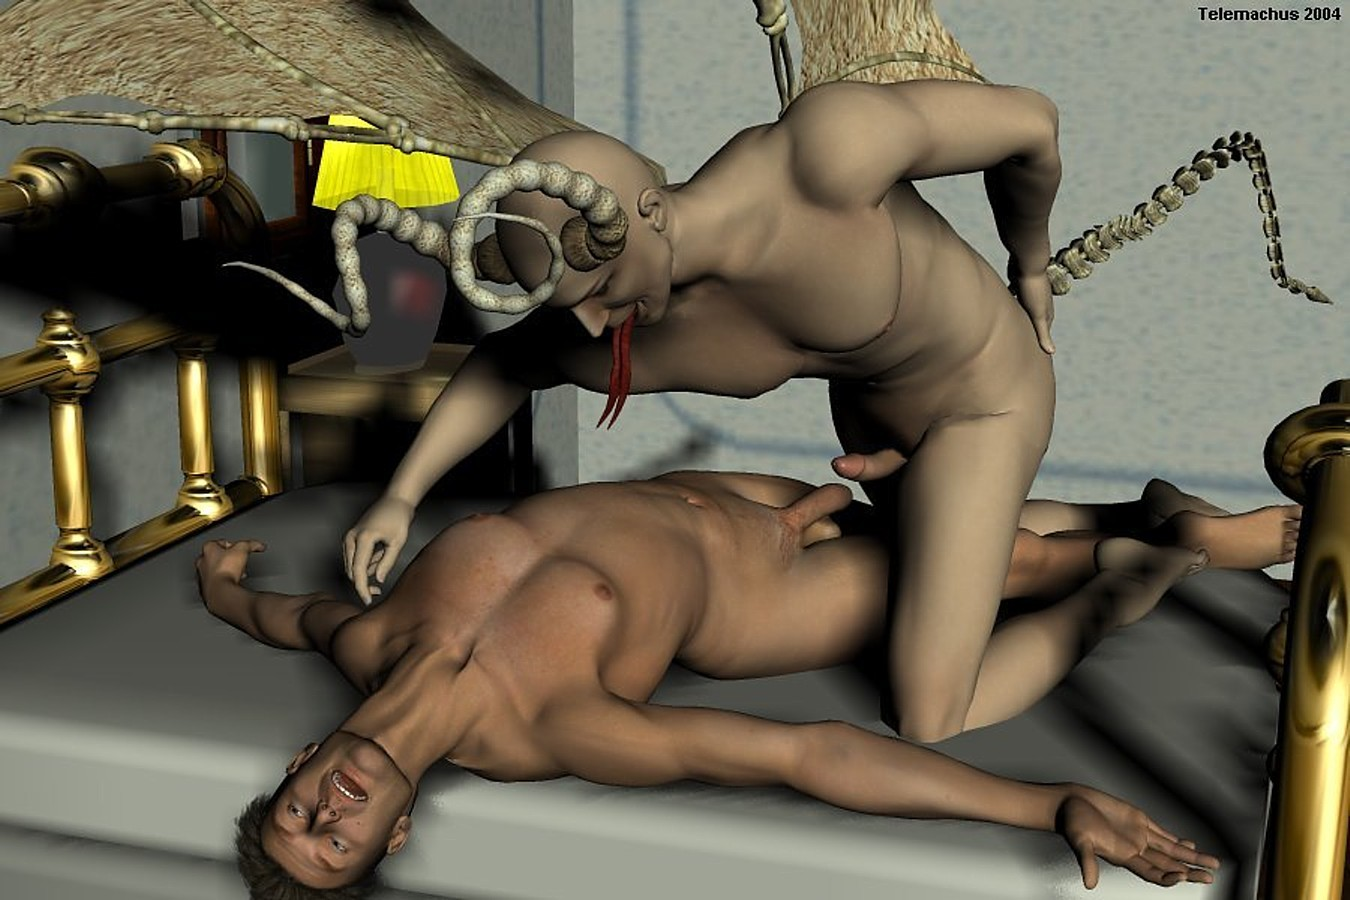 Wolfman sex videa sexy images